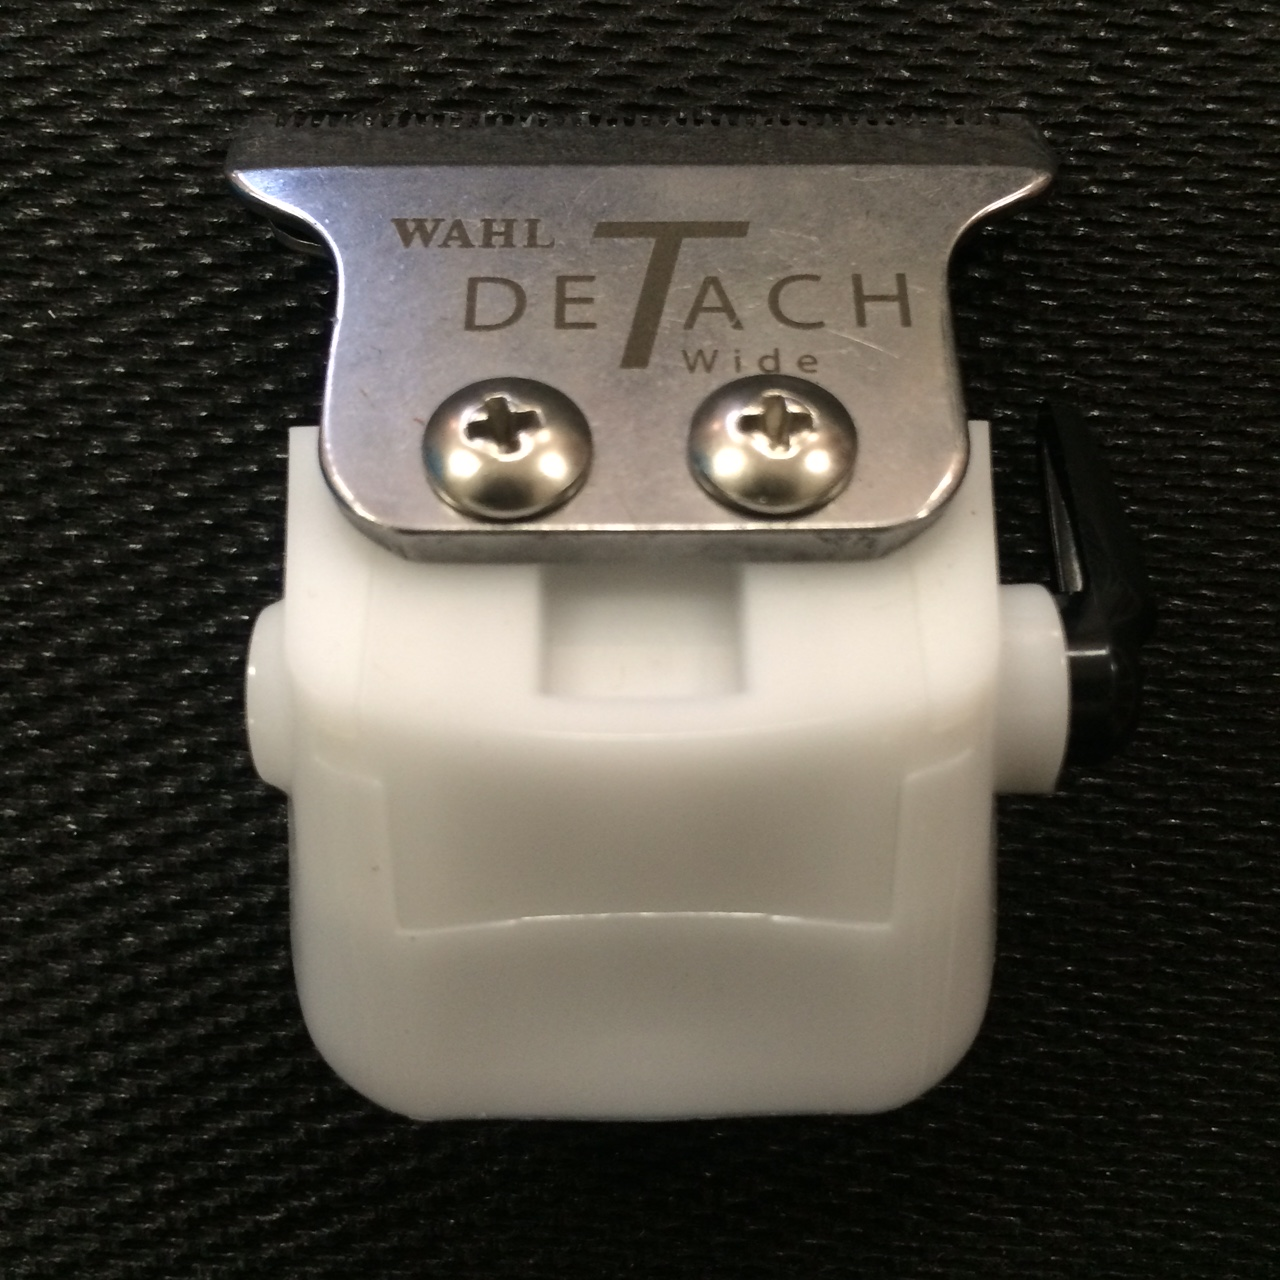 Wahl Detach T-Wide Adjustable Replacement Blade - 2227